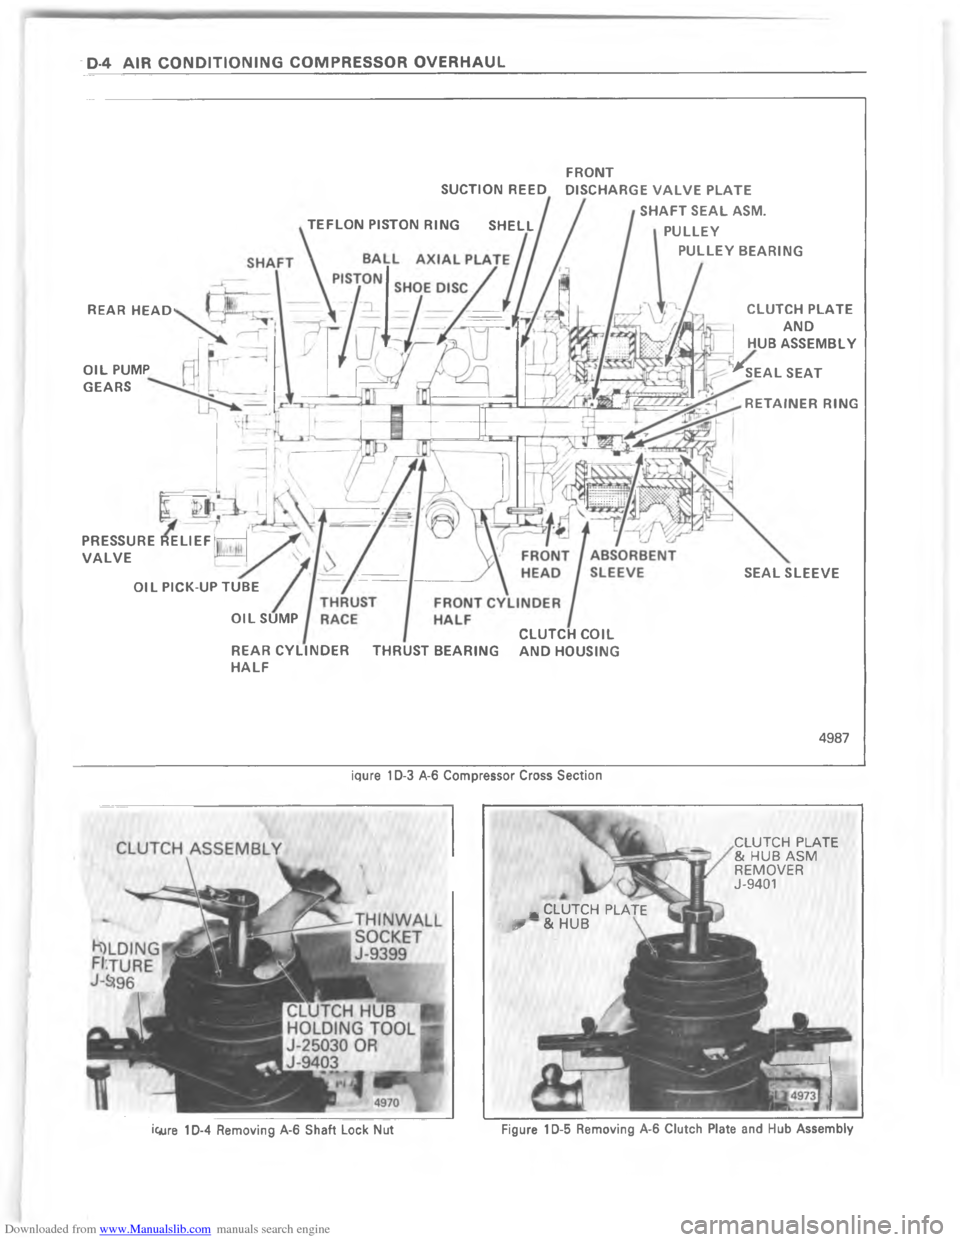 1980 Camaro Assembly Manual 2006 Ic Bus Dt466 Ecm Wiring Diagram Picture Of Taking It Off Array Chevrolet 2 G Workshop Rh Carmanualsonline Info